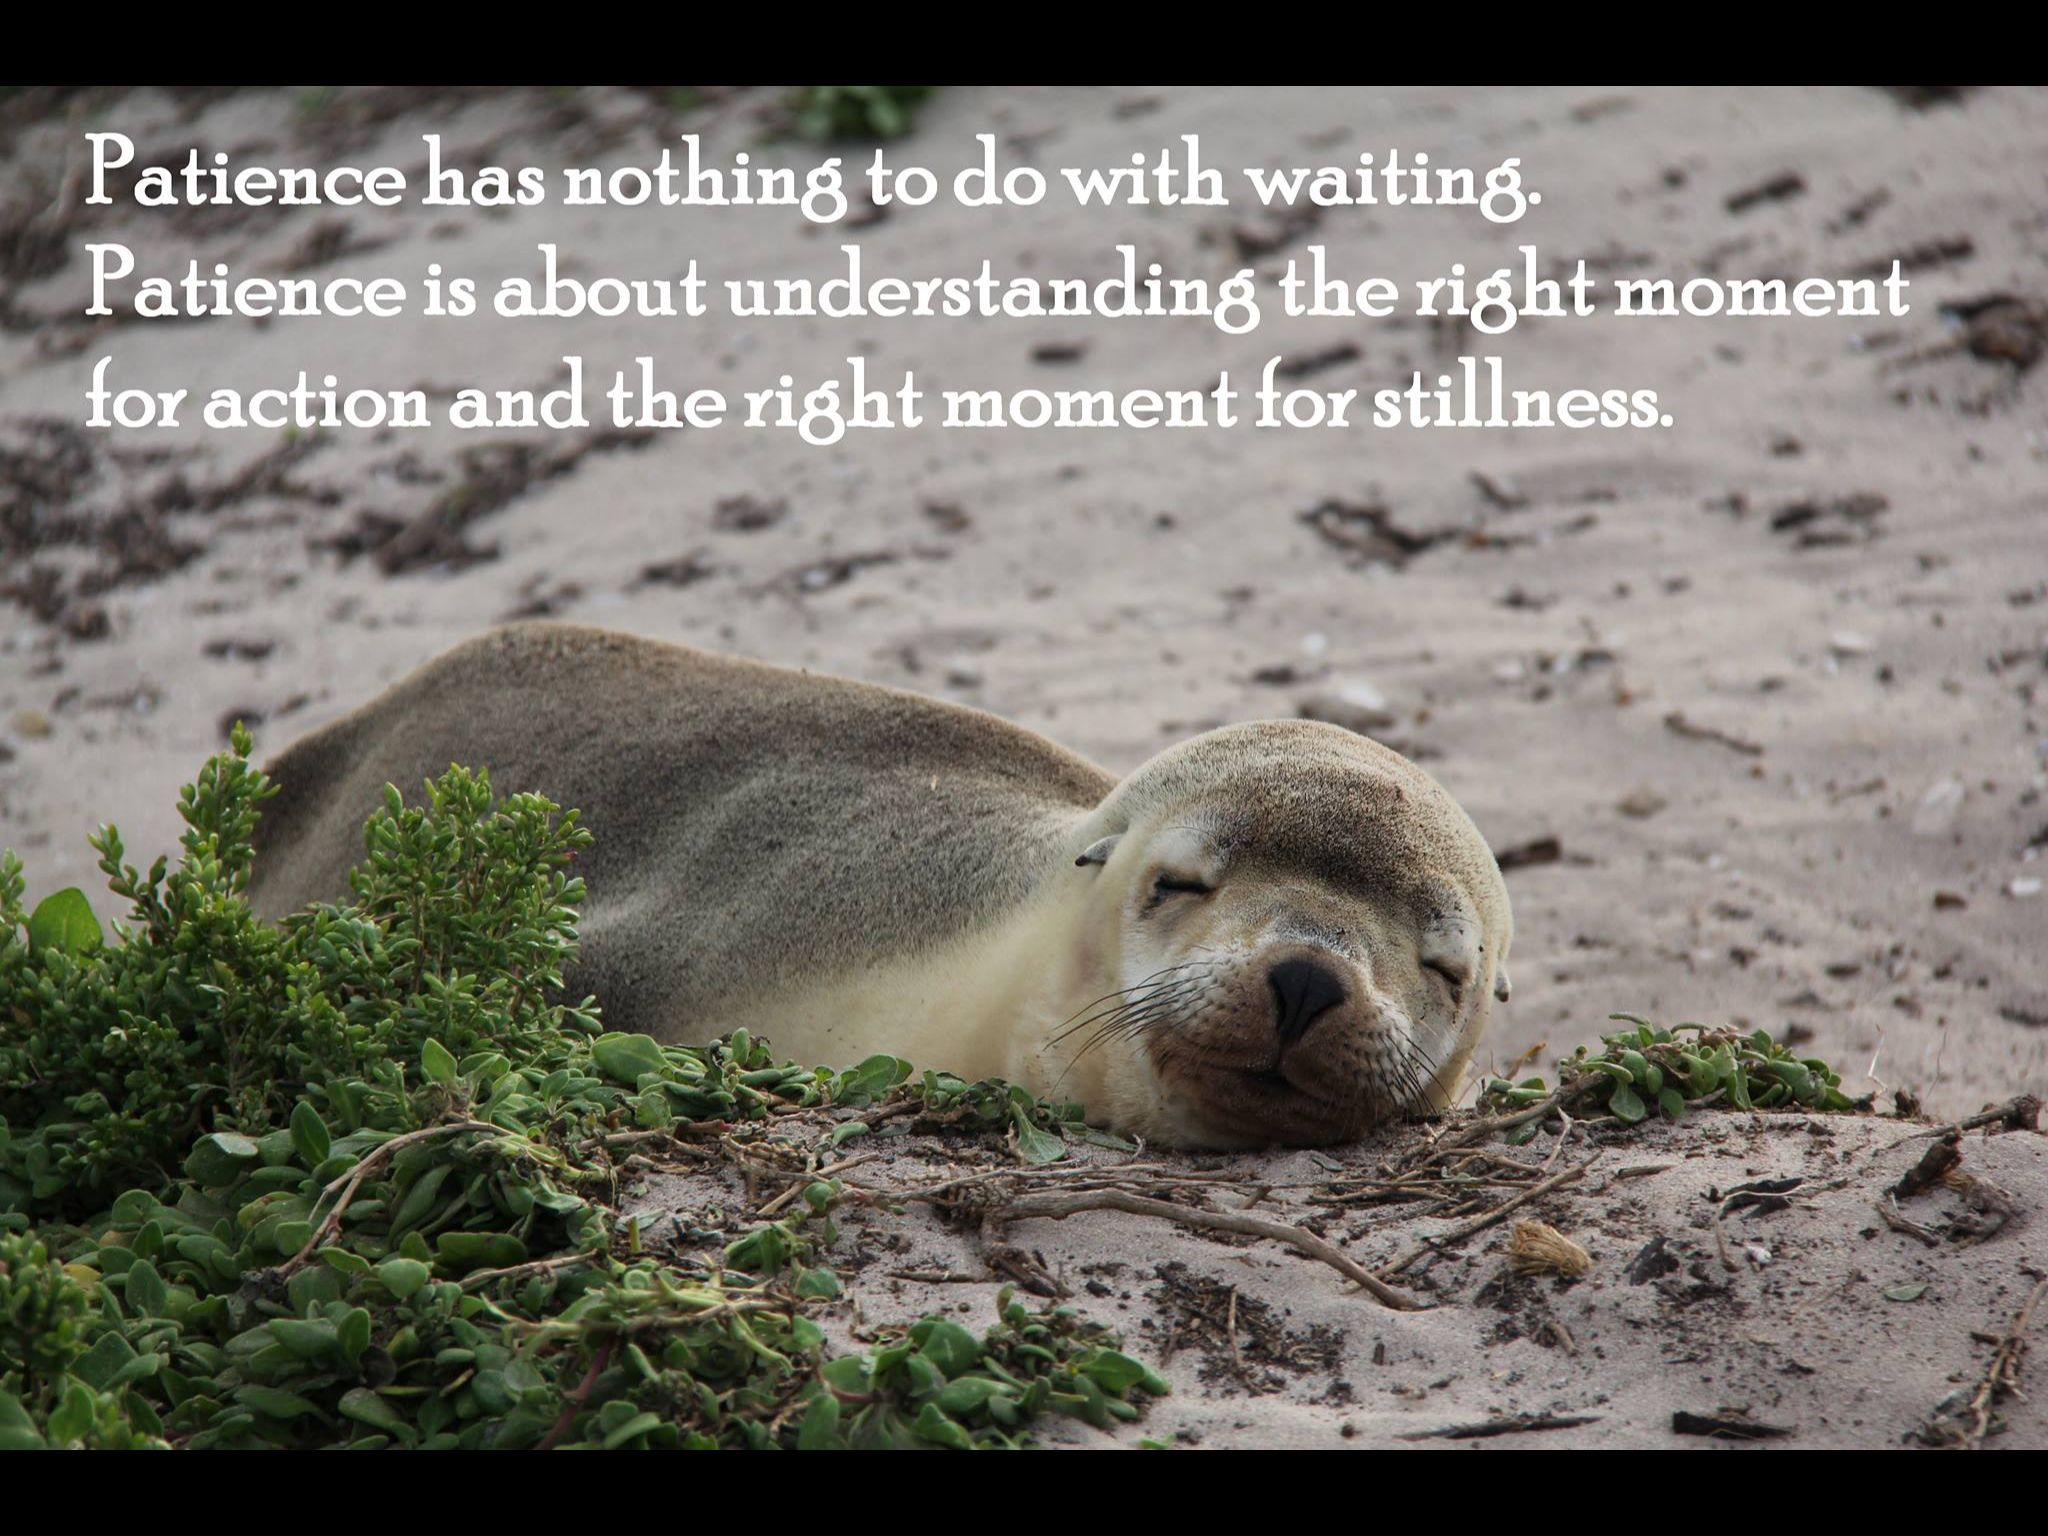 Patience has nothing to do with waiting. Patience is about understanding the right moment for action and the right moment for stillness.